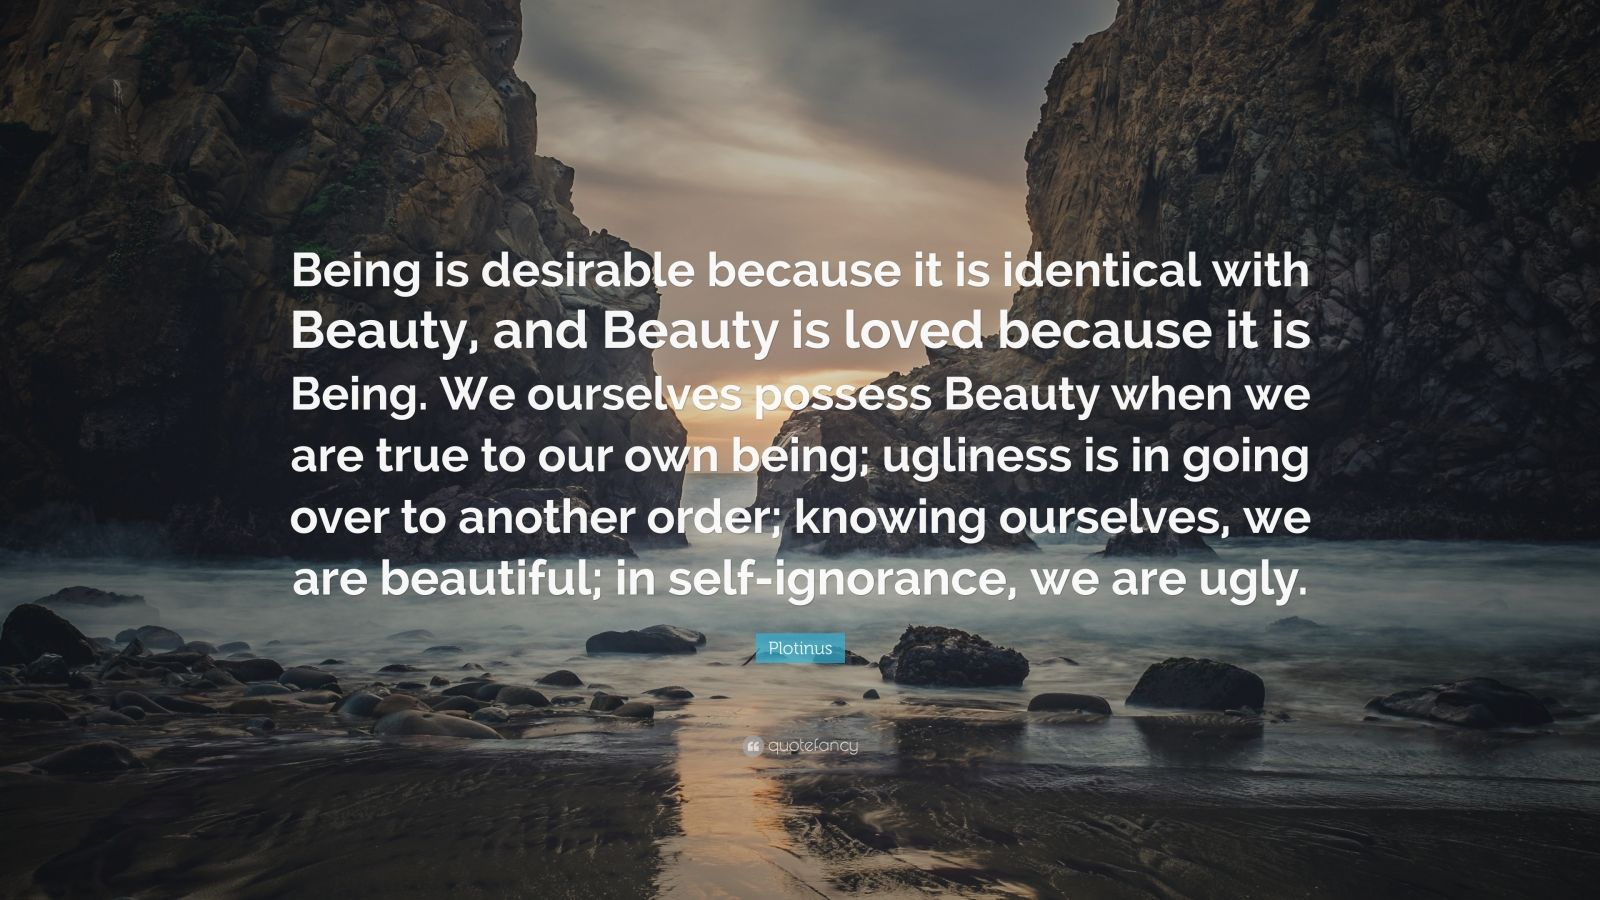 "Plotinus Quote: ""Being is desirable because it is identical with Beauty, and Beauty is loved because it is Being. We ourselves possess Beauty when we are true to our own being; ugliness is in going over to another order; knowing ourselves, we are beautiful; in self-ignorance, we are ugly."""